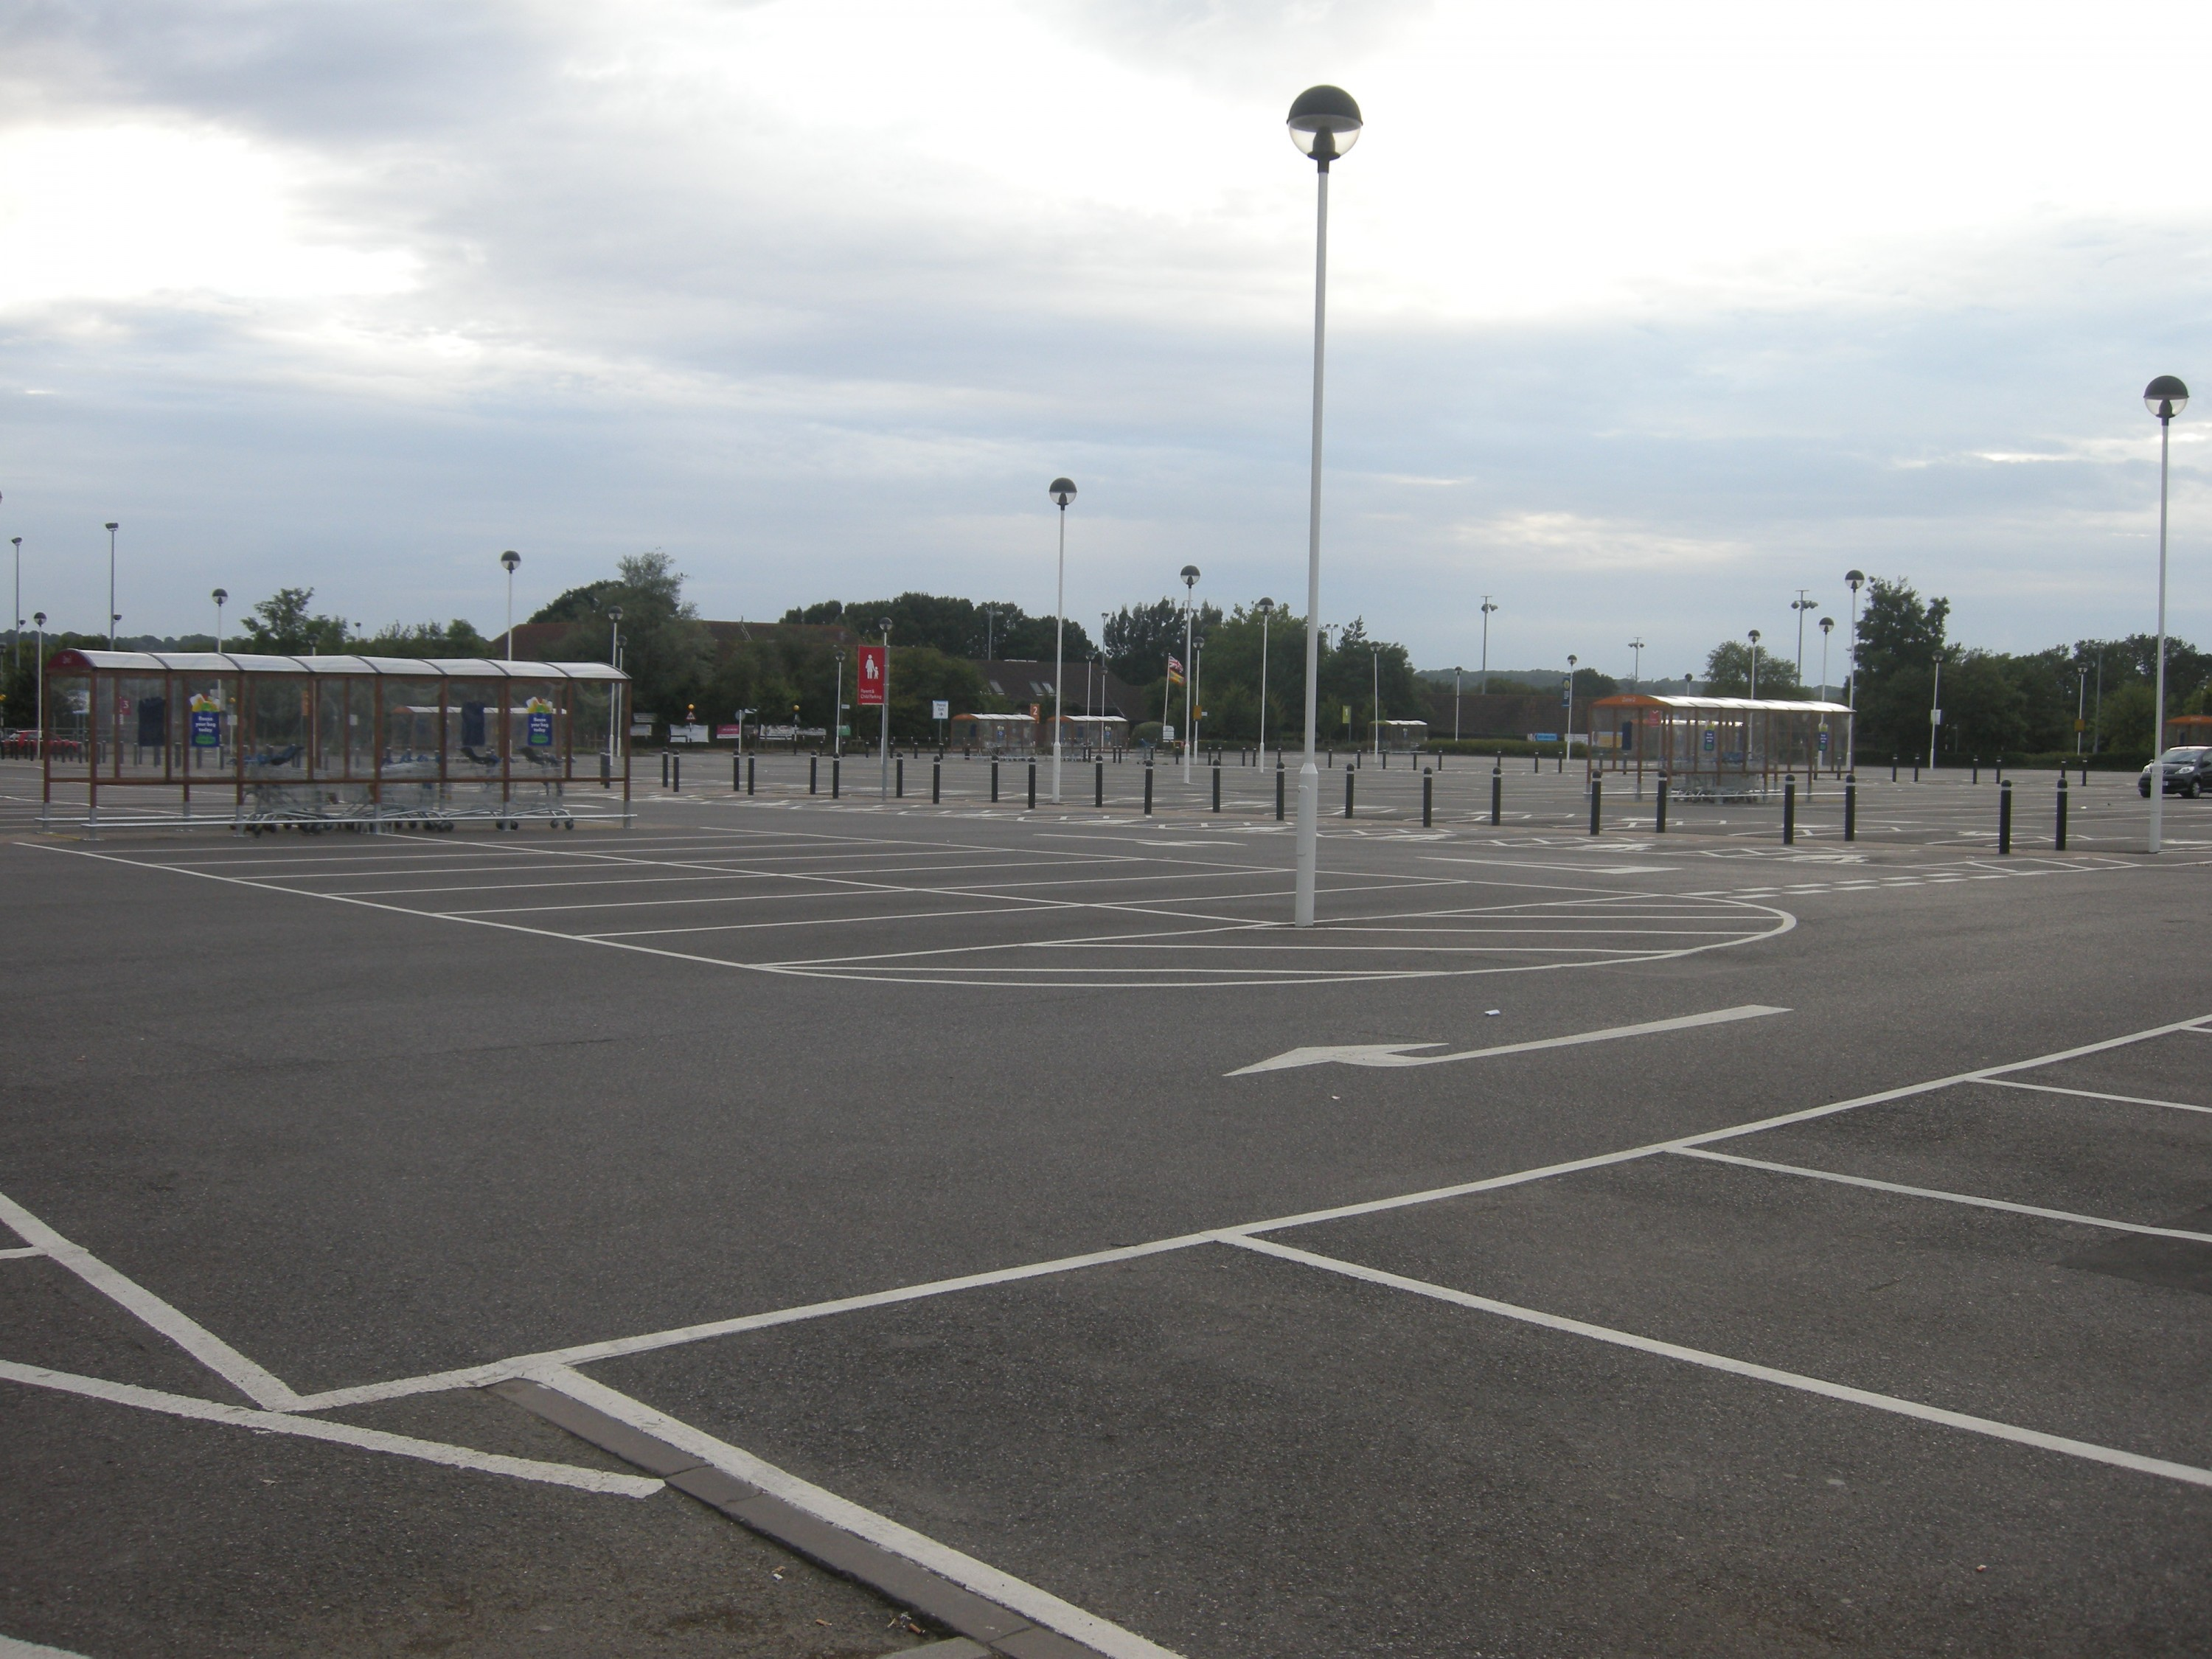 Car Park Cleaning - A clean car park after a commercial clean and pressure washing service.